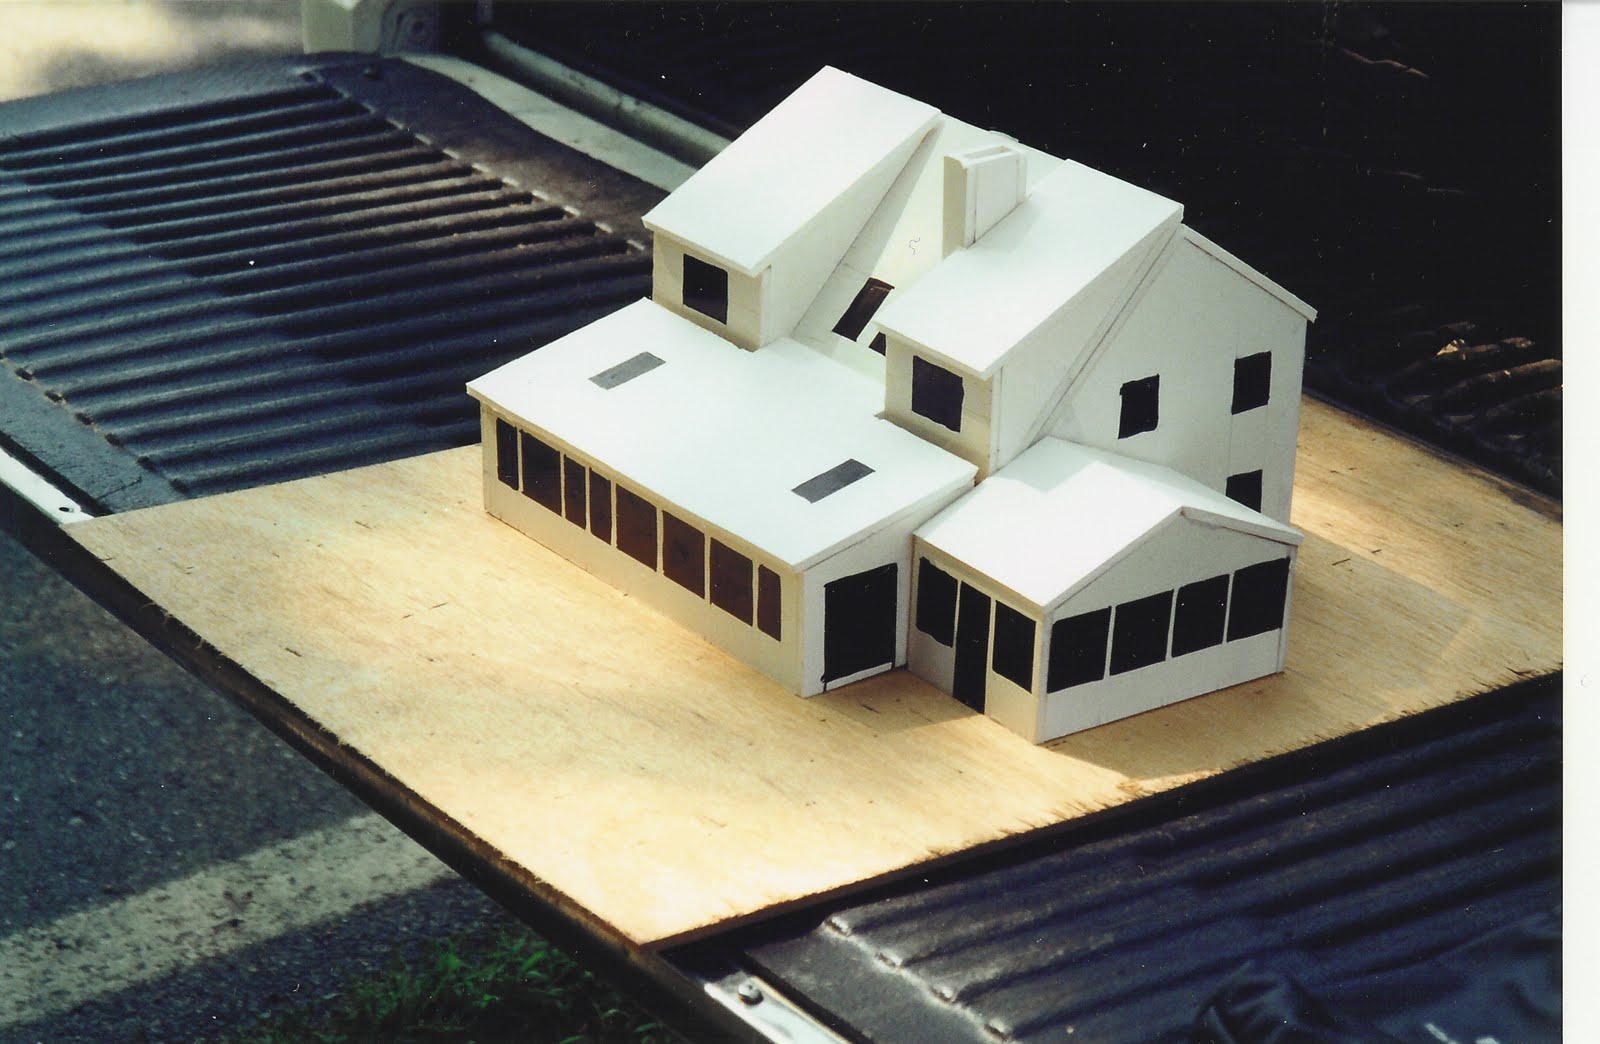 Home remodeling blog build a foam core model before - What to know before building a house ...